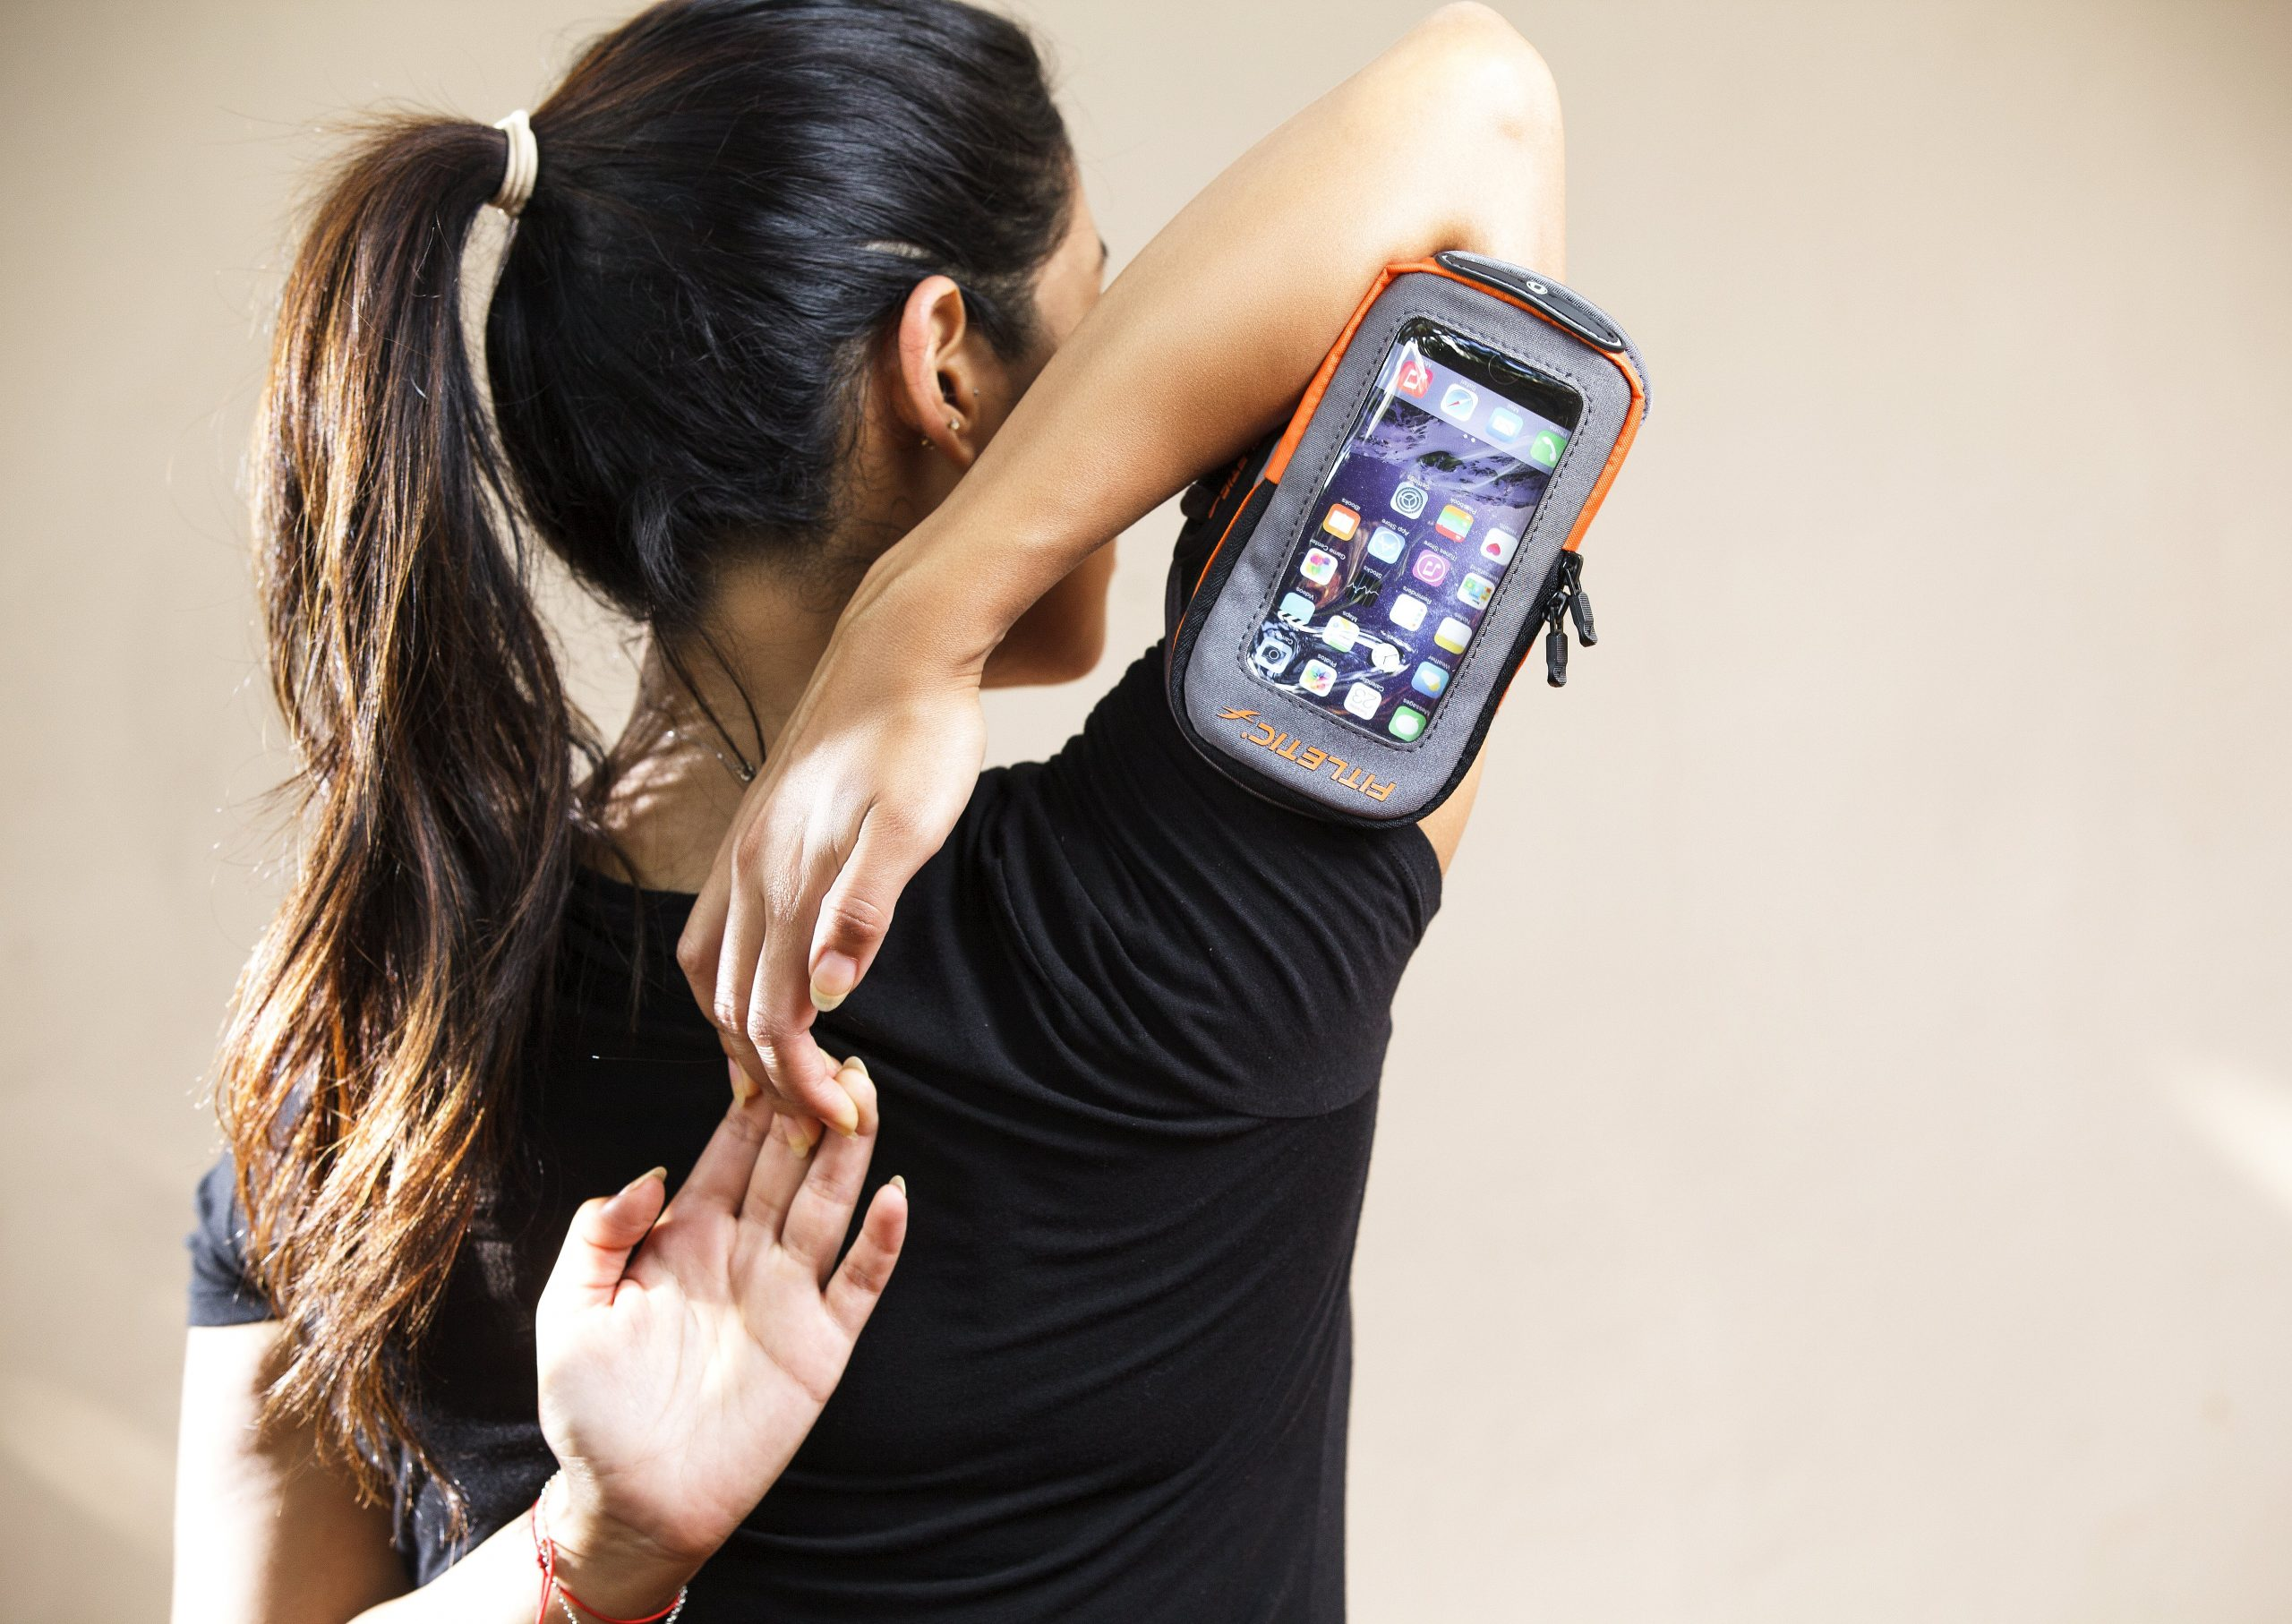 stretching with hydralock arm band